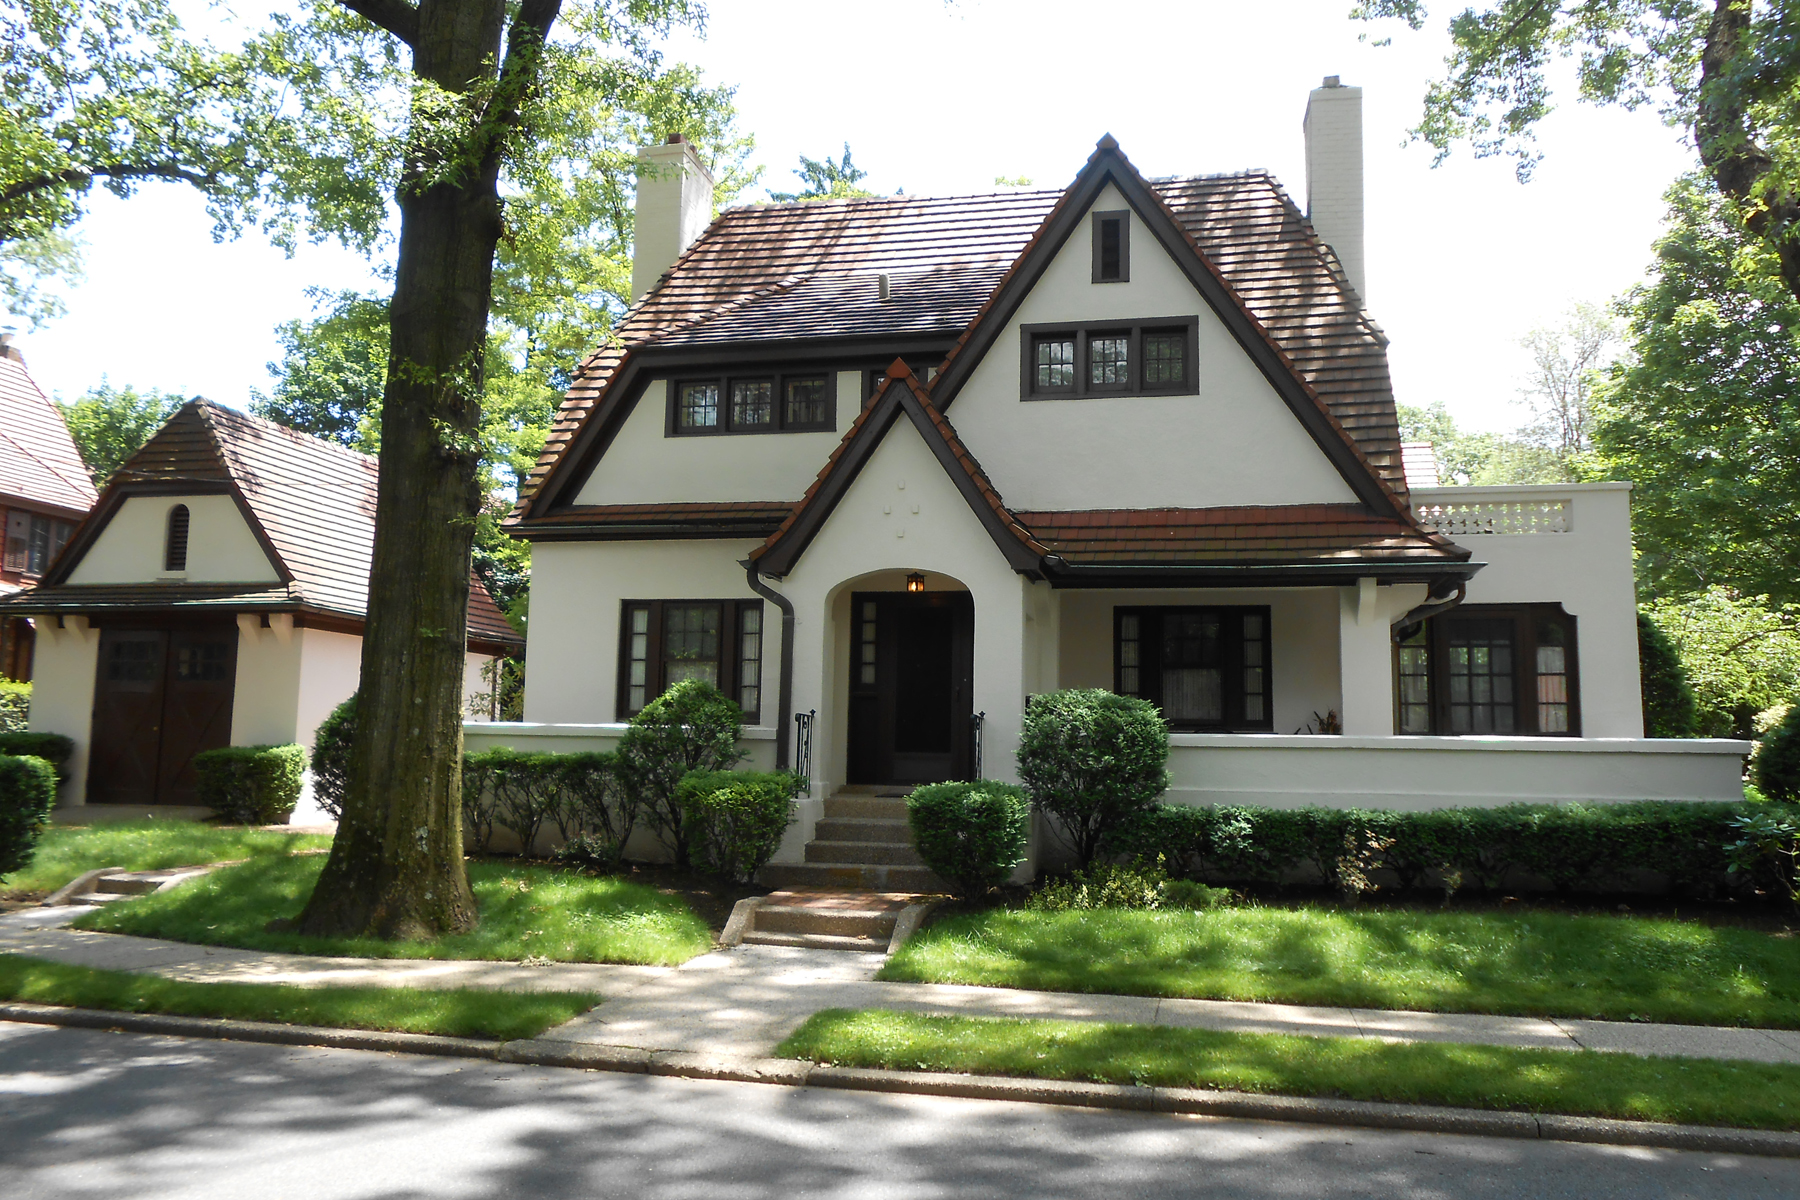 """Single Family Home for Sale at """"STORYBOOK TUDOR ON EMBASSY ROW"""" 240 Greenway North, Forest Hills Gardens, Forest Hills Gardens, Forest Hills, New York 11375 United States"""